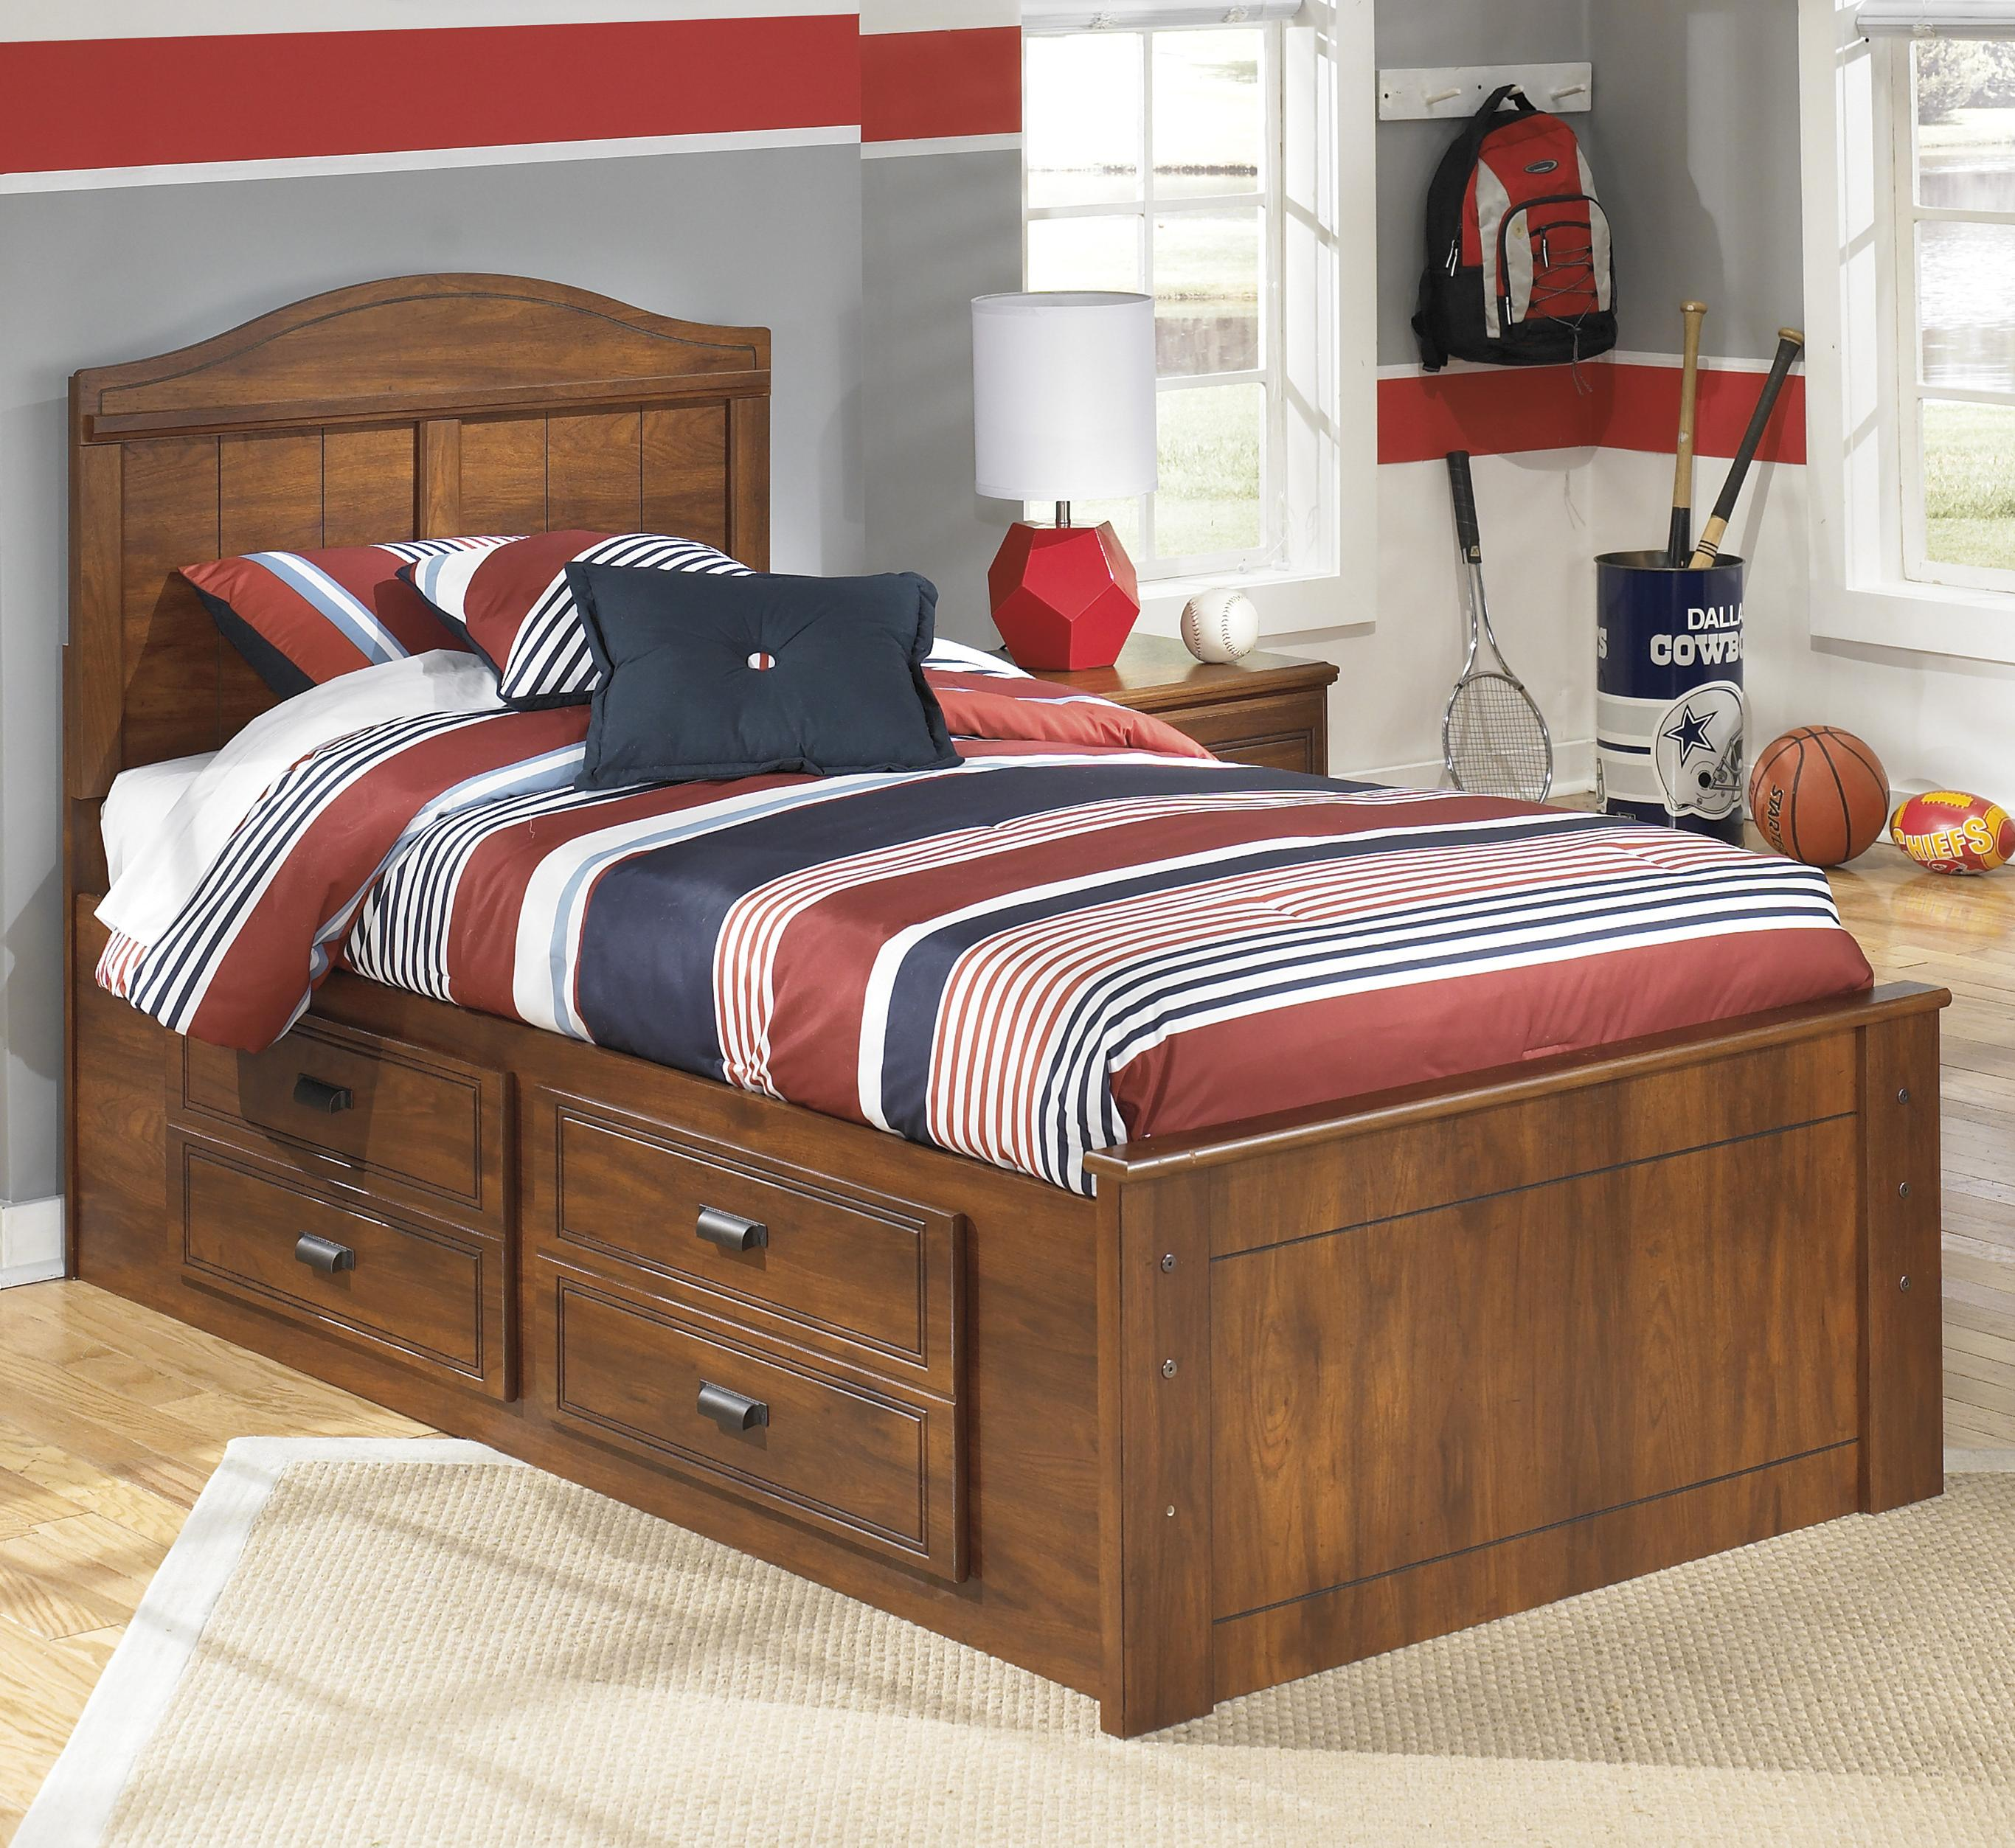 Signature Design by Ashley Barchan Twin Panel Bed with Underbed Storage - Item Number: B228-53+52+2x50+B100-11